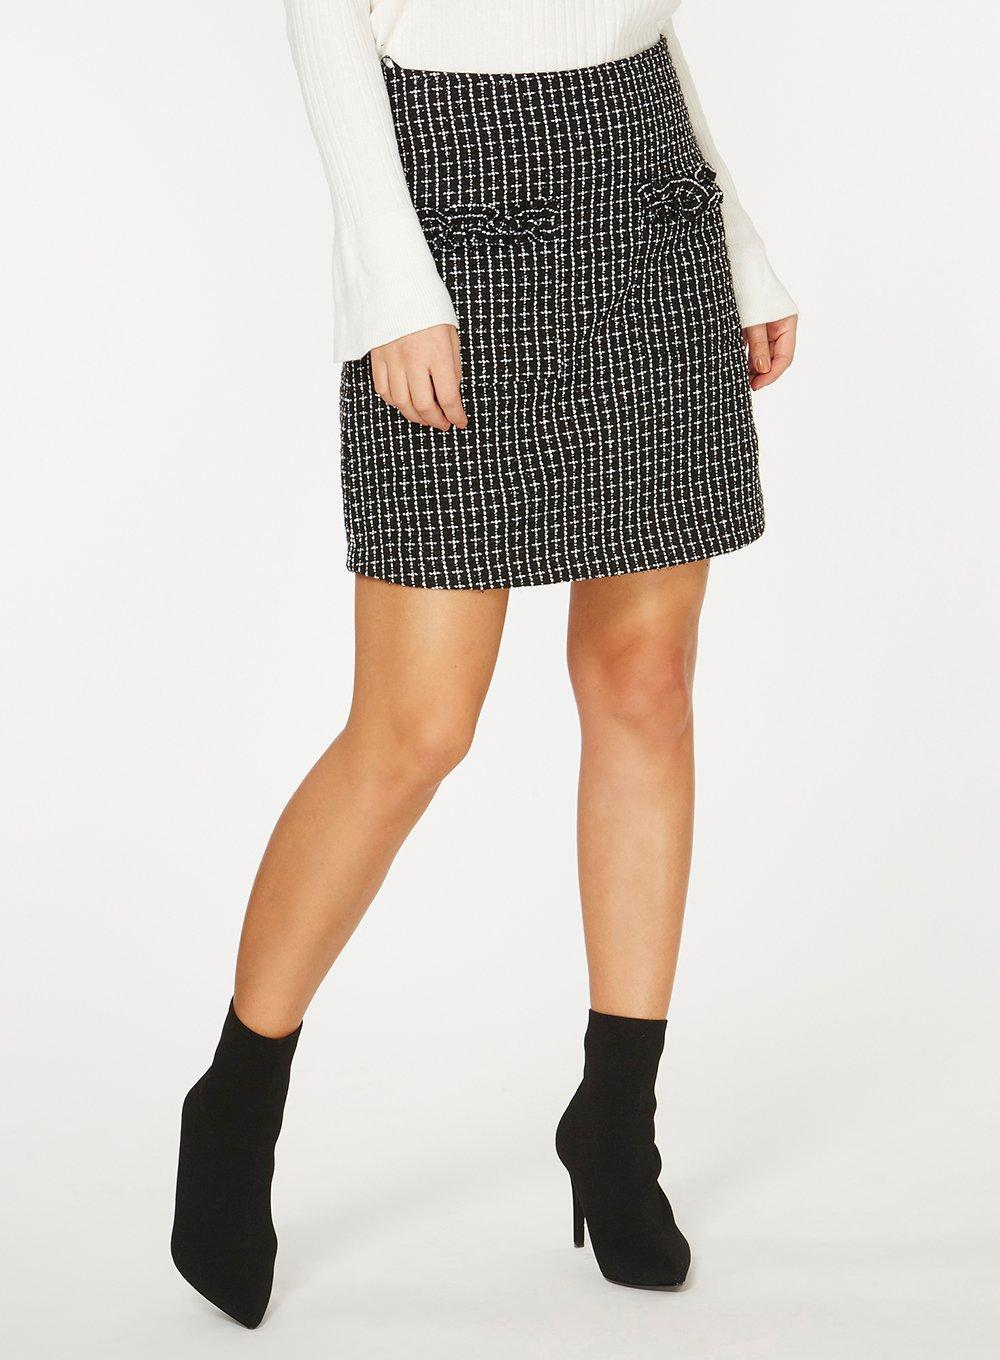 Dorothy Perkins Womens Monochrome Boucle A-Line Skirt- Free Shipping Really Discount Get Authentic Cheap Great Deals Shop For SRKCE5T